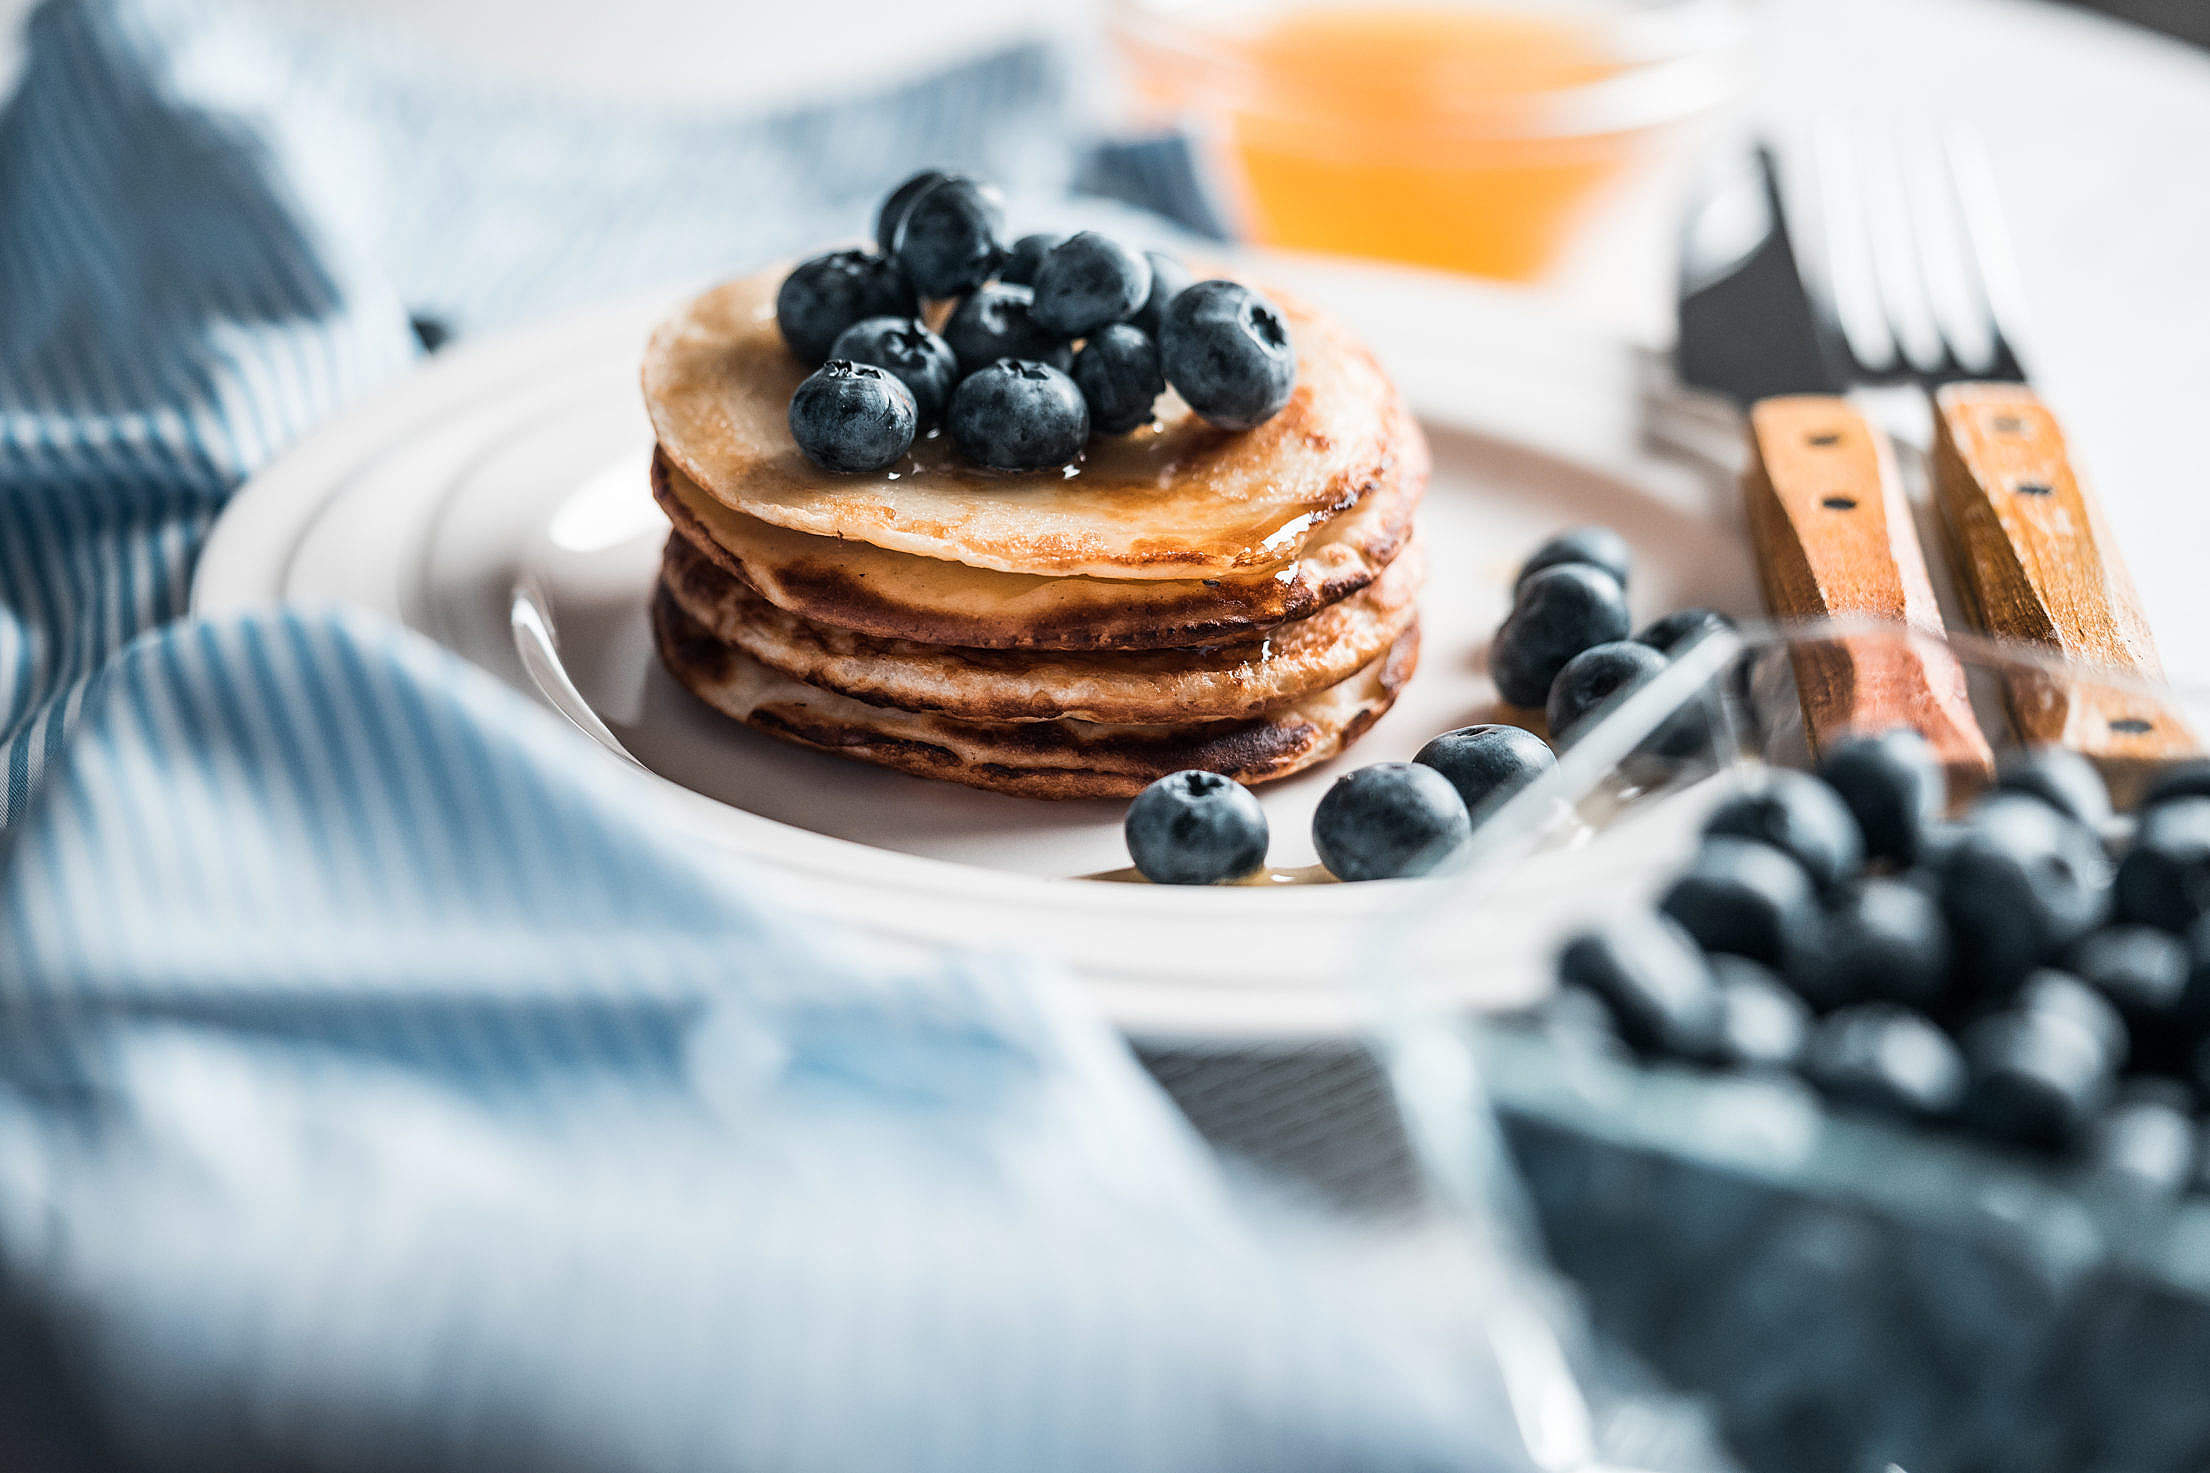 Pancakes Free Stock Photo